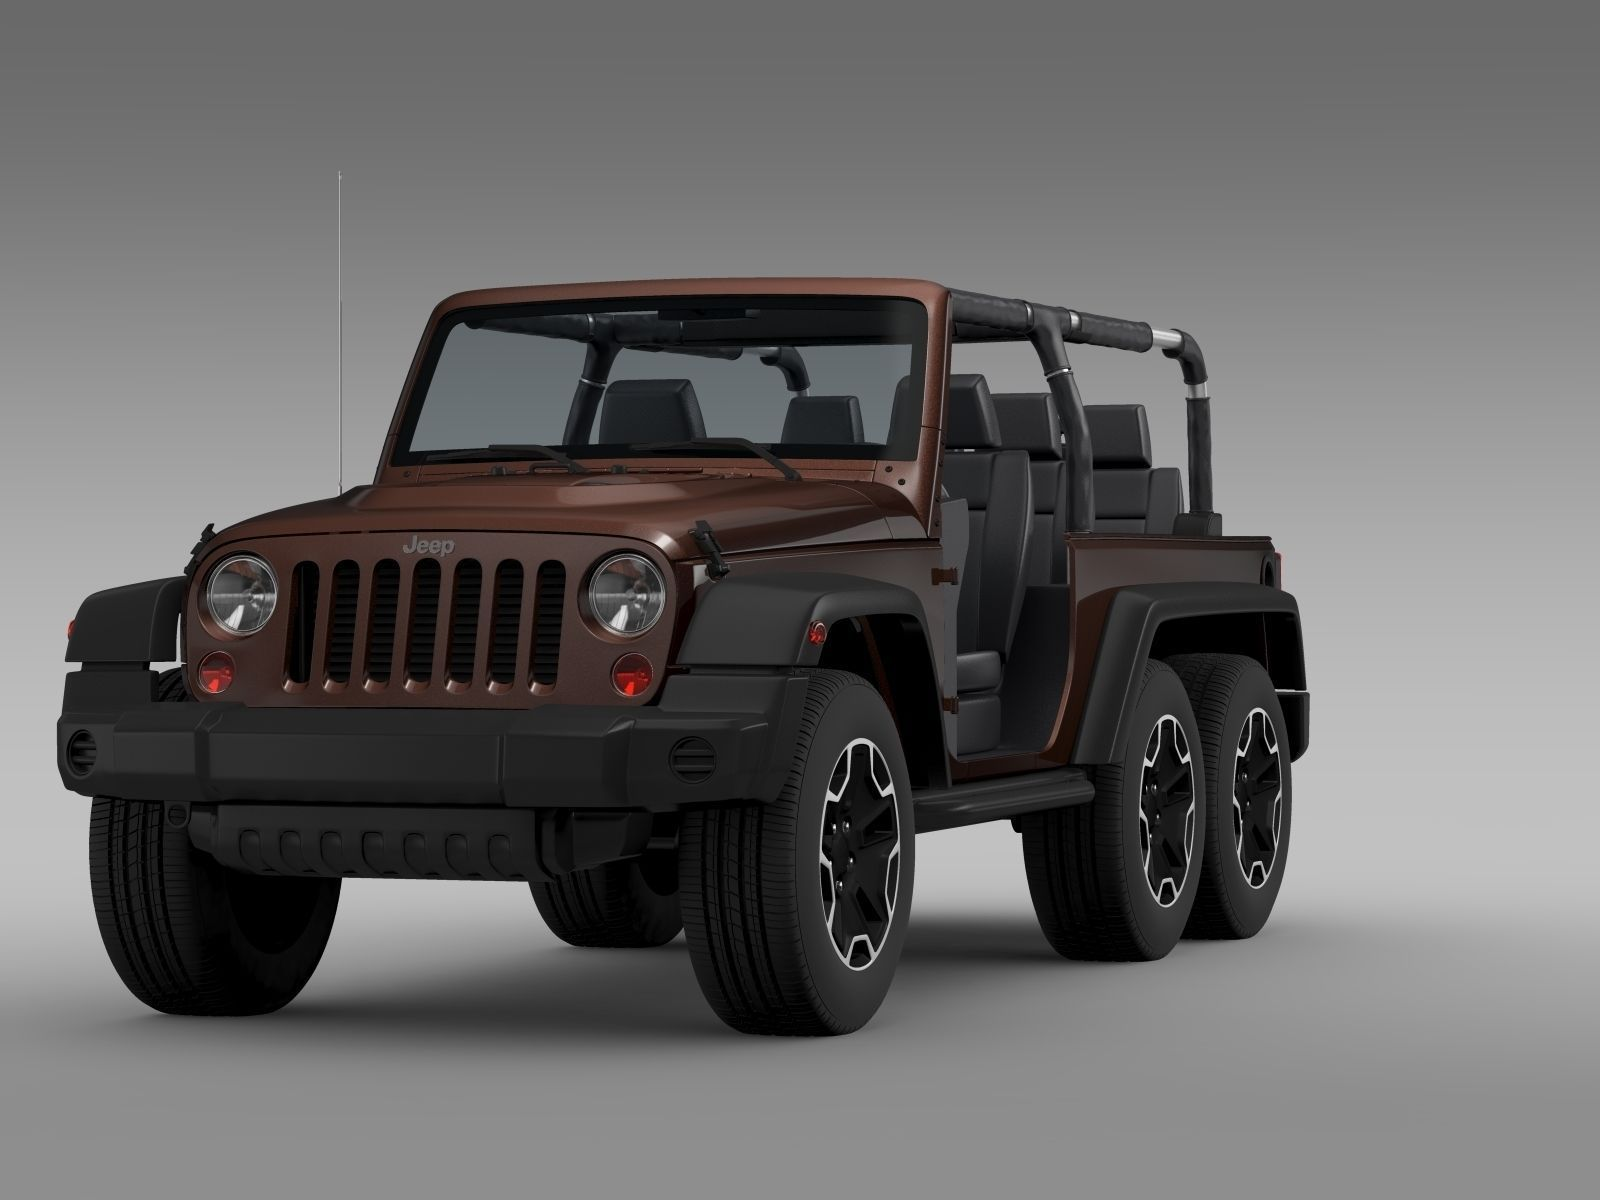 jeep wrangler rubicon 6x6 2016 3d model max obj 3ds fbx c4d lwo lw lws. Black Bedroom Furniture Sets. Home Design Ideas